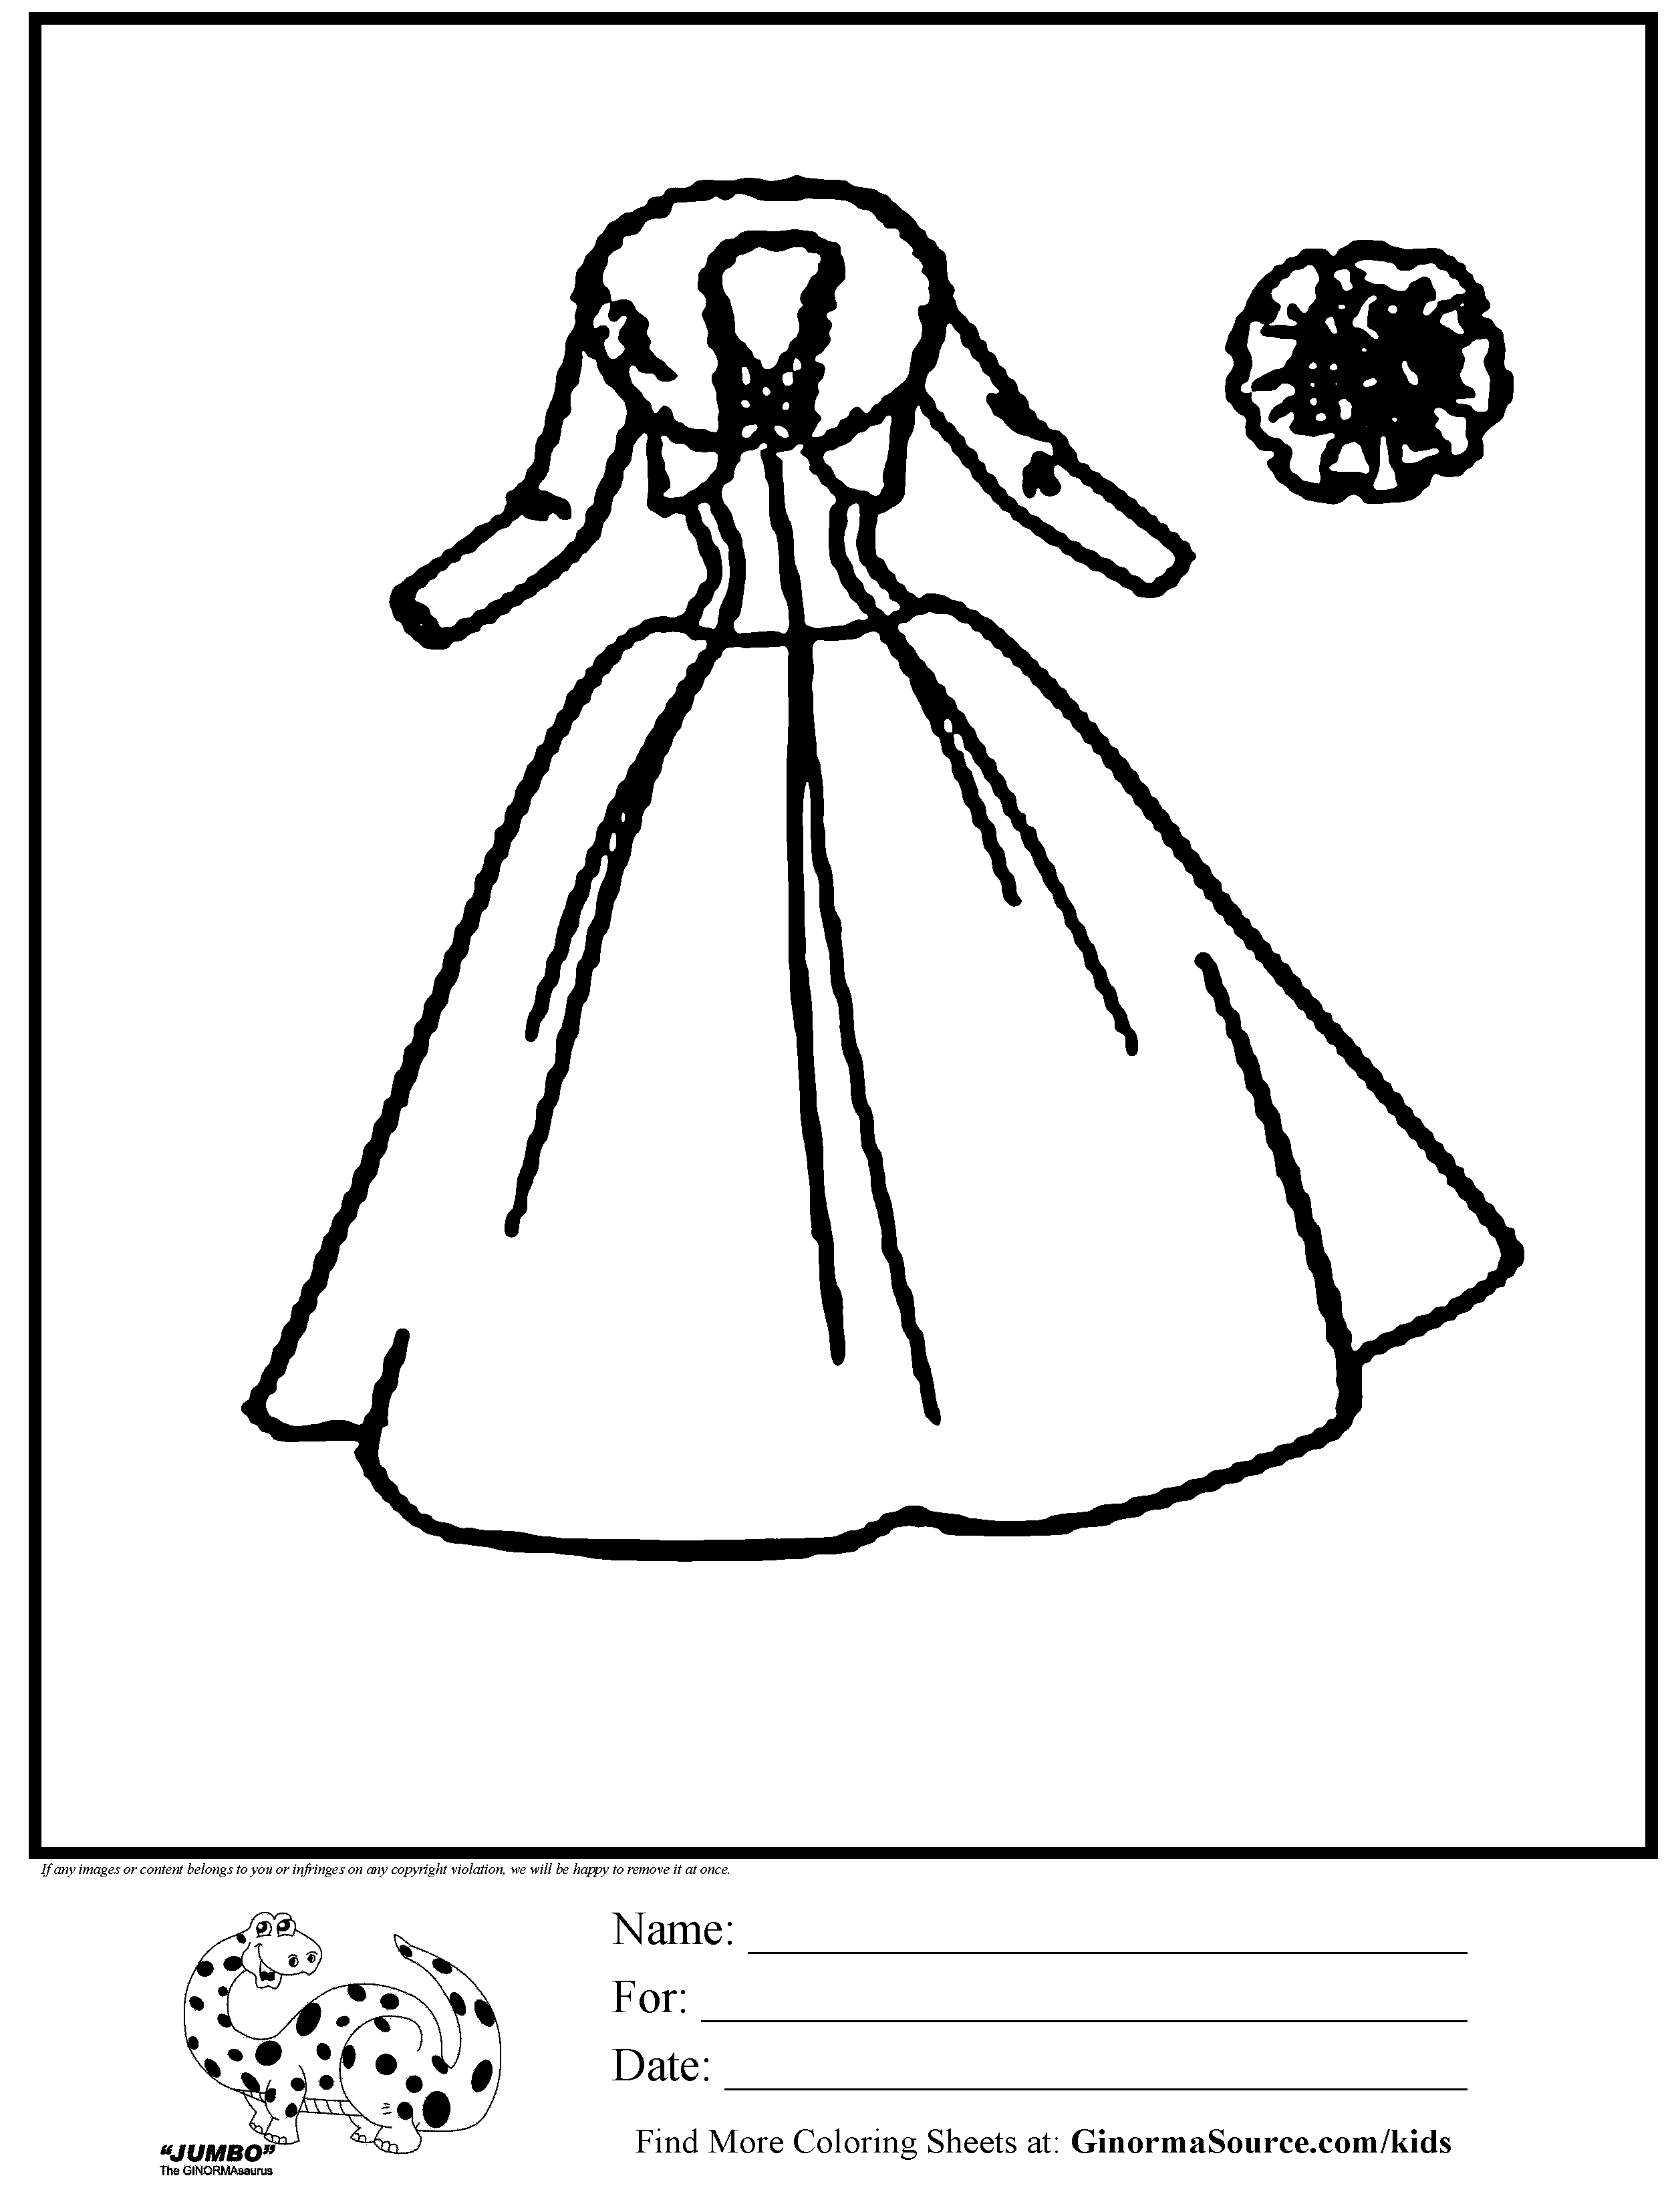 dresses coloring pages dress summer coloring page for girls printable free coloring pages dresses